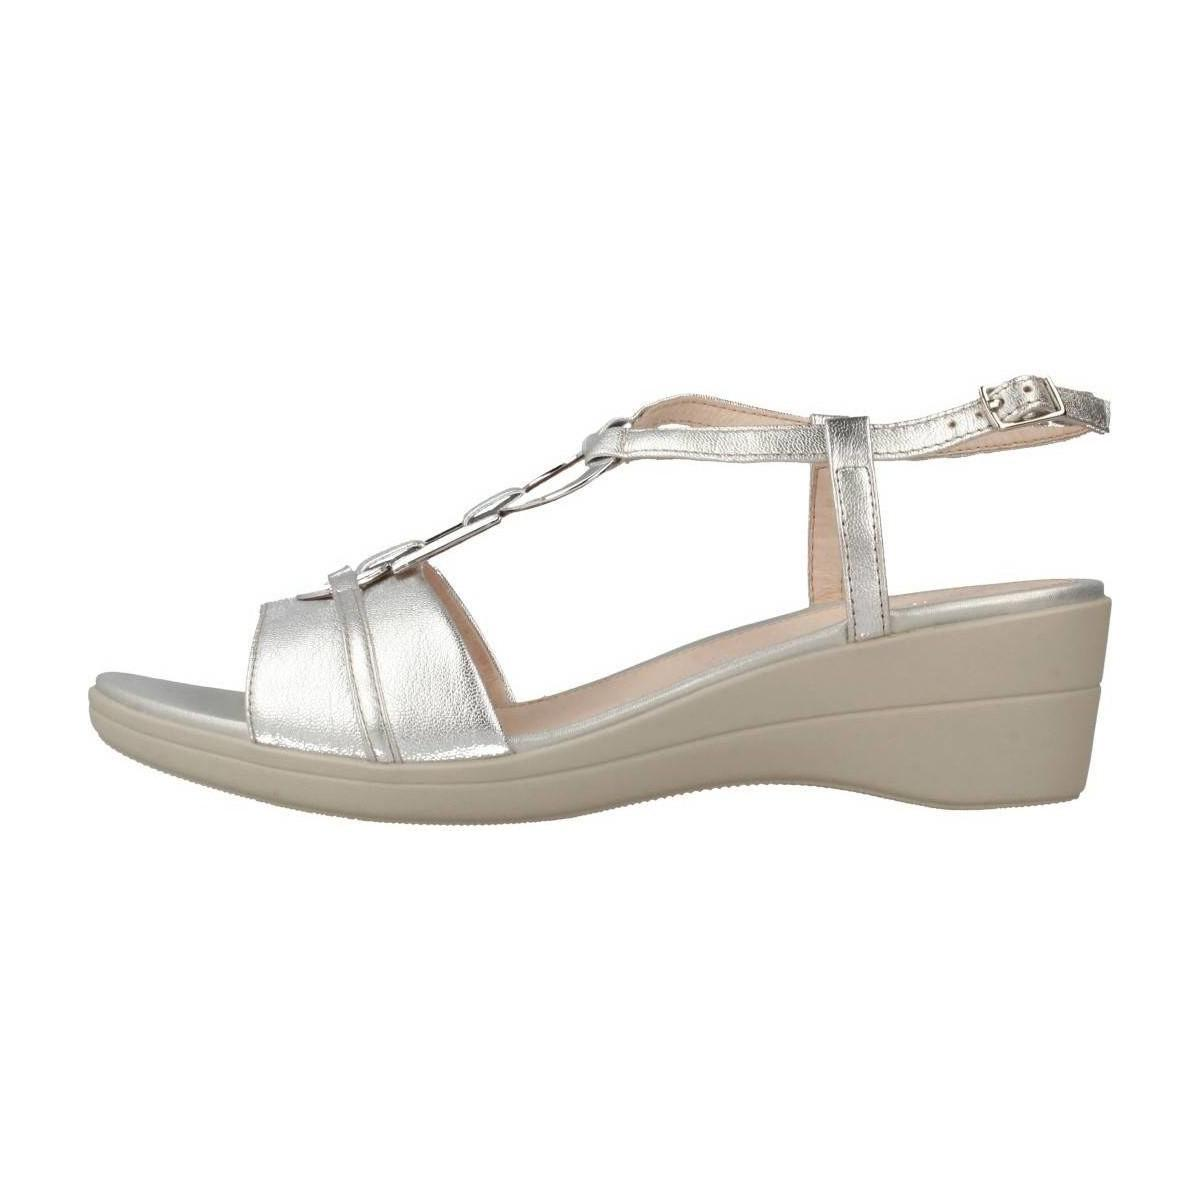 Stonefly VANITY III women's Sandals in Free Shipping Outlet Store Sale Professional RXAdQ